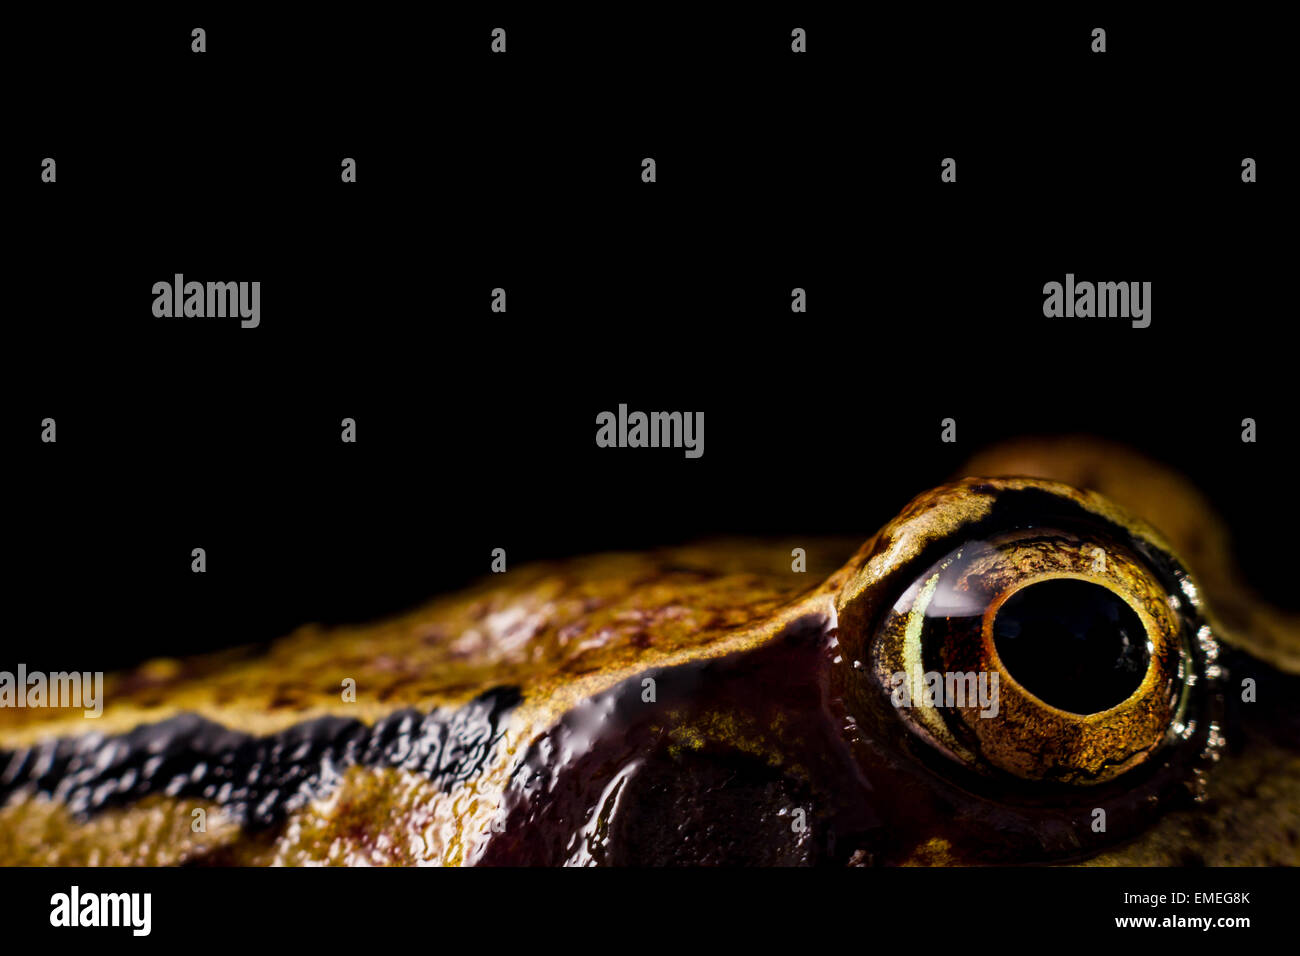 Common Frog Rana temporaria, a close up of its eye against a black background, St Mary's, Isles of Scilly, November - Stock Image